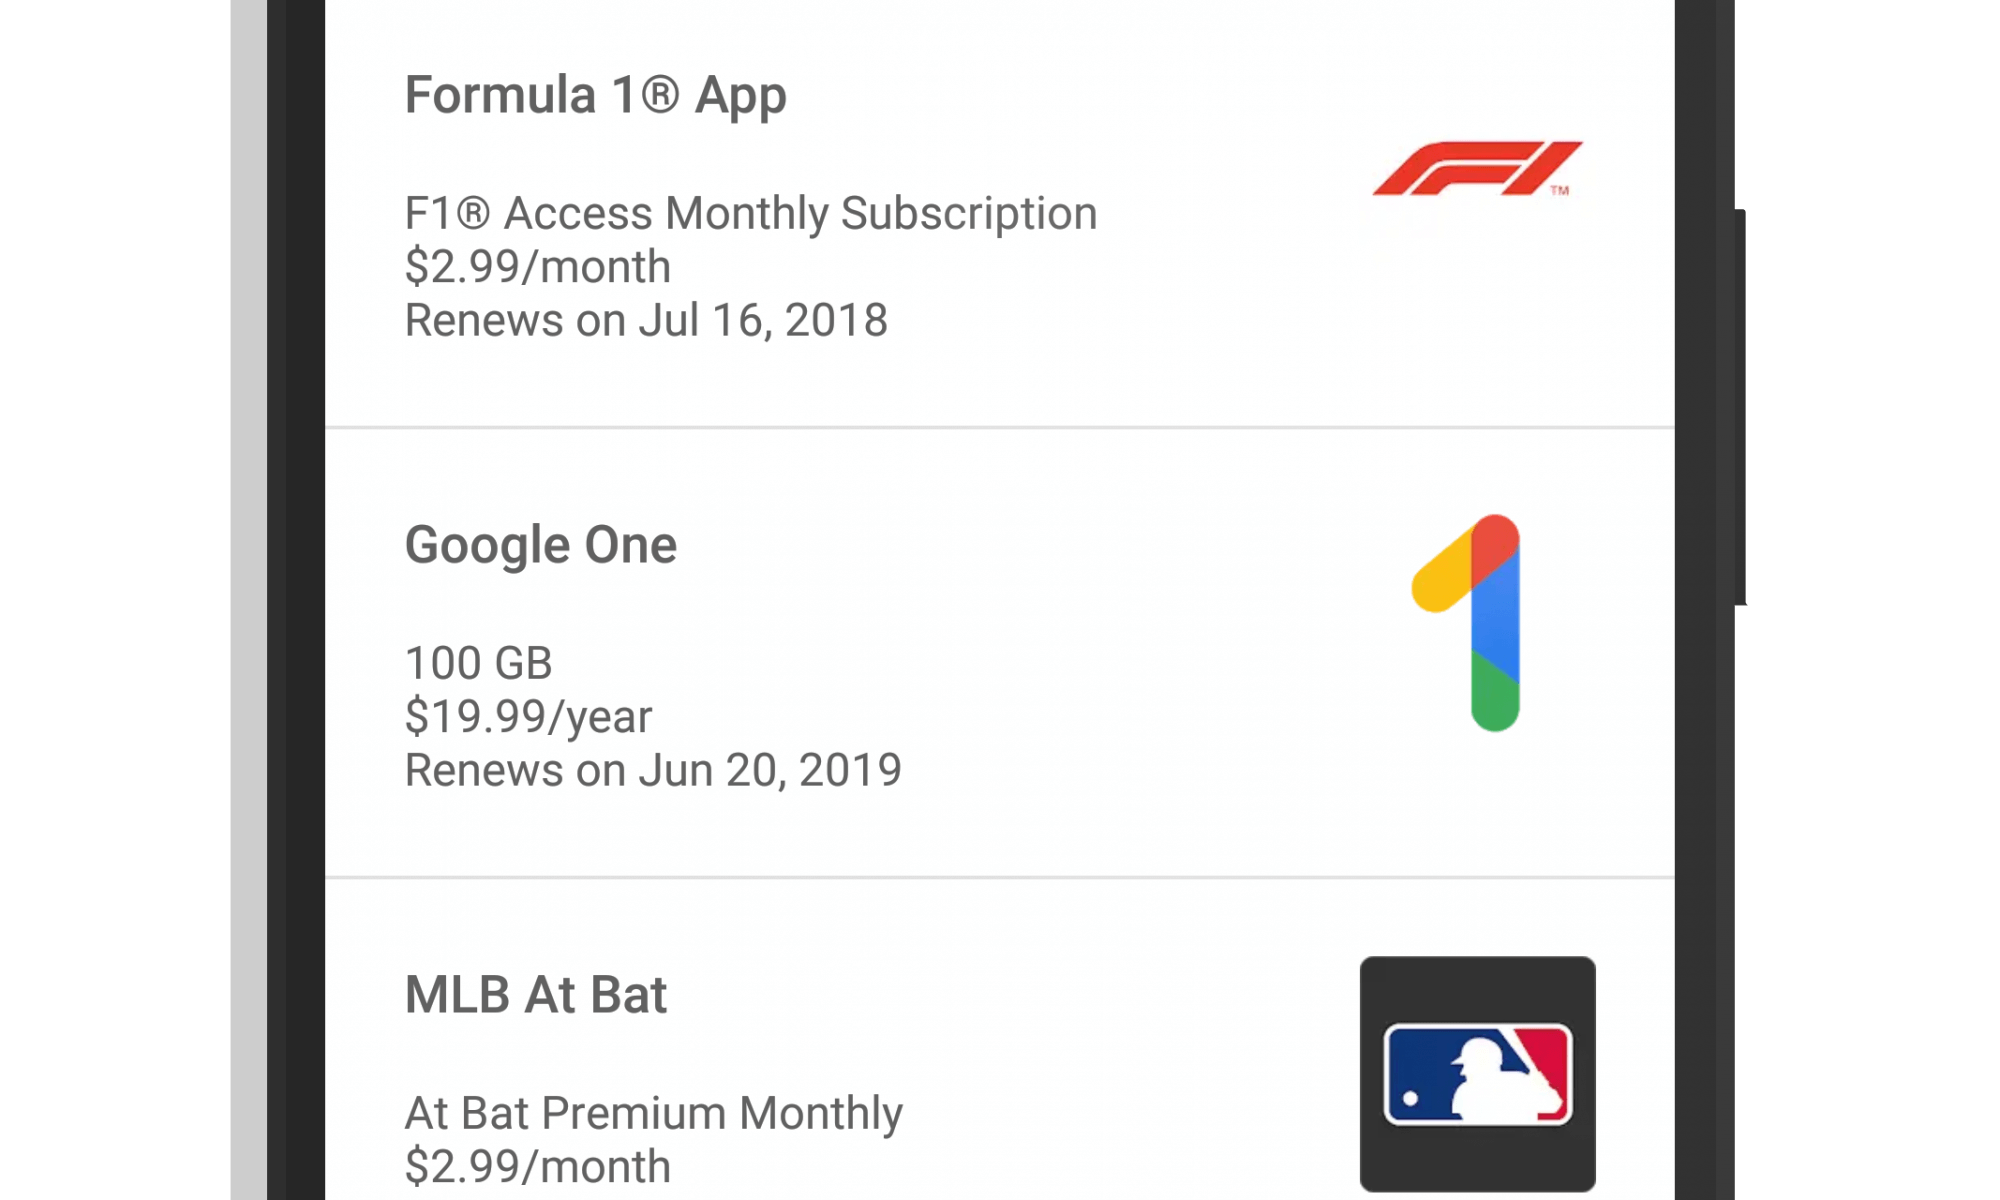 Subscriptions Page in The Google Play Store